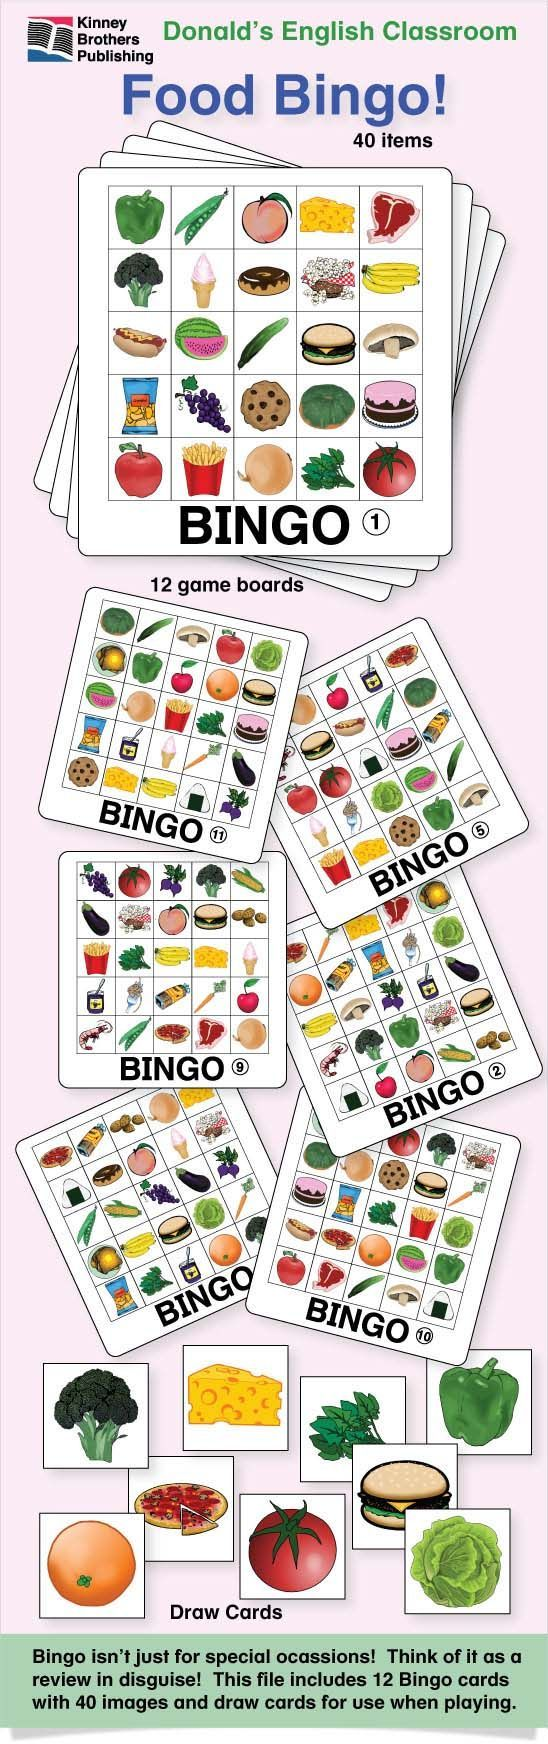 Food Bingo isn't just for special occasions! Think of Food Bingo as a delicious lesson review disguised as a game!  This popular activity is perfect for student centers, special occasions, or just yummy fun!  Includes 12 game boards and 40 images for use as draw cards.  Bon appetit!  $2 on TpT  #ESL #ELL #EFL